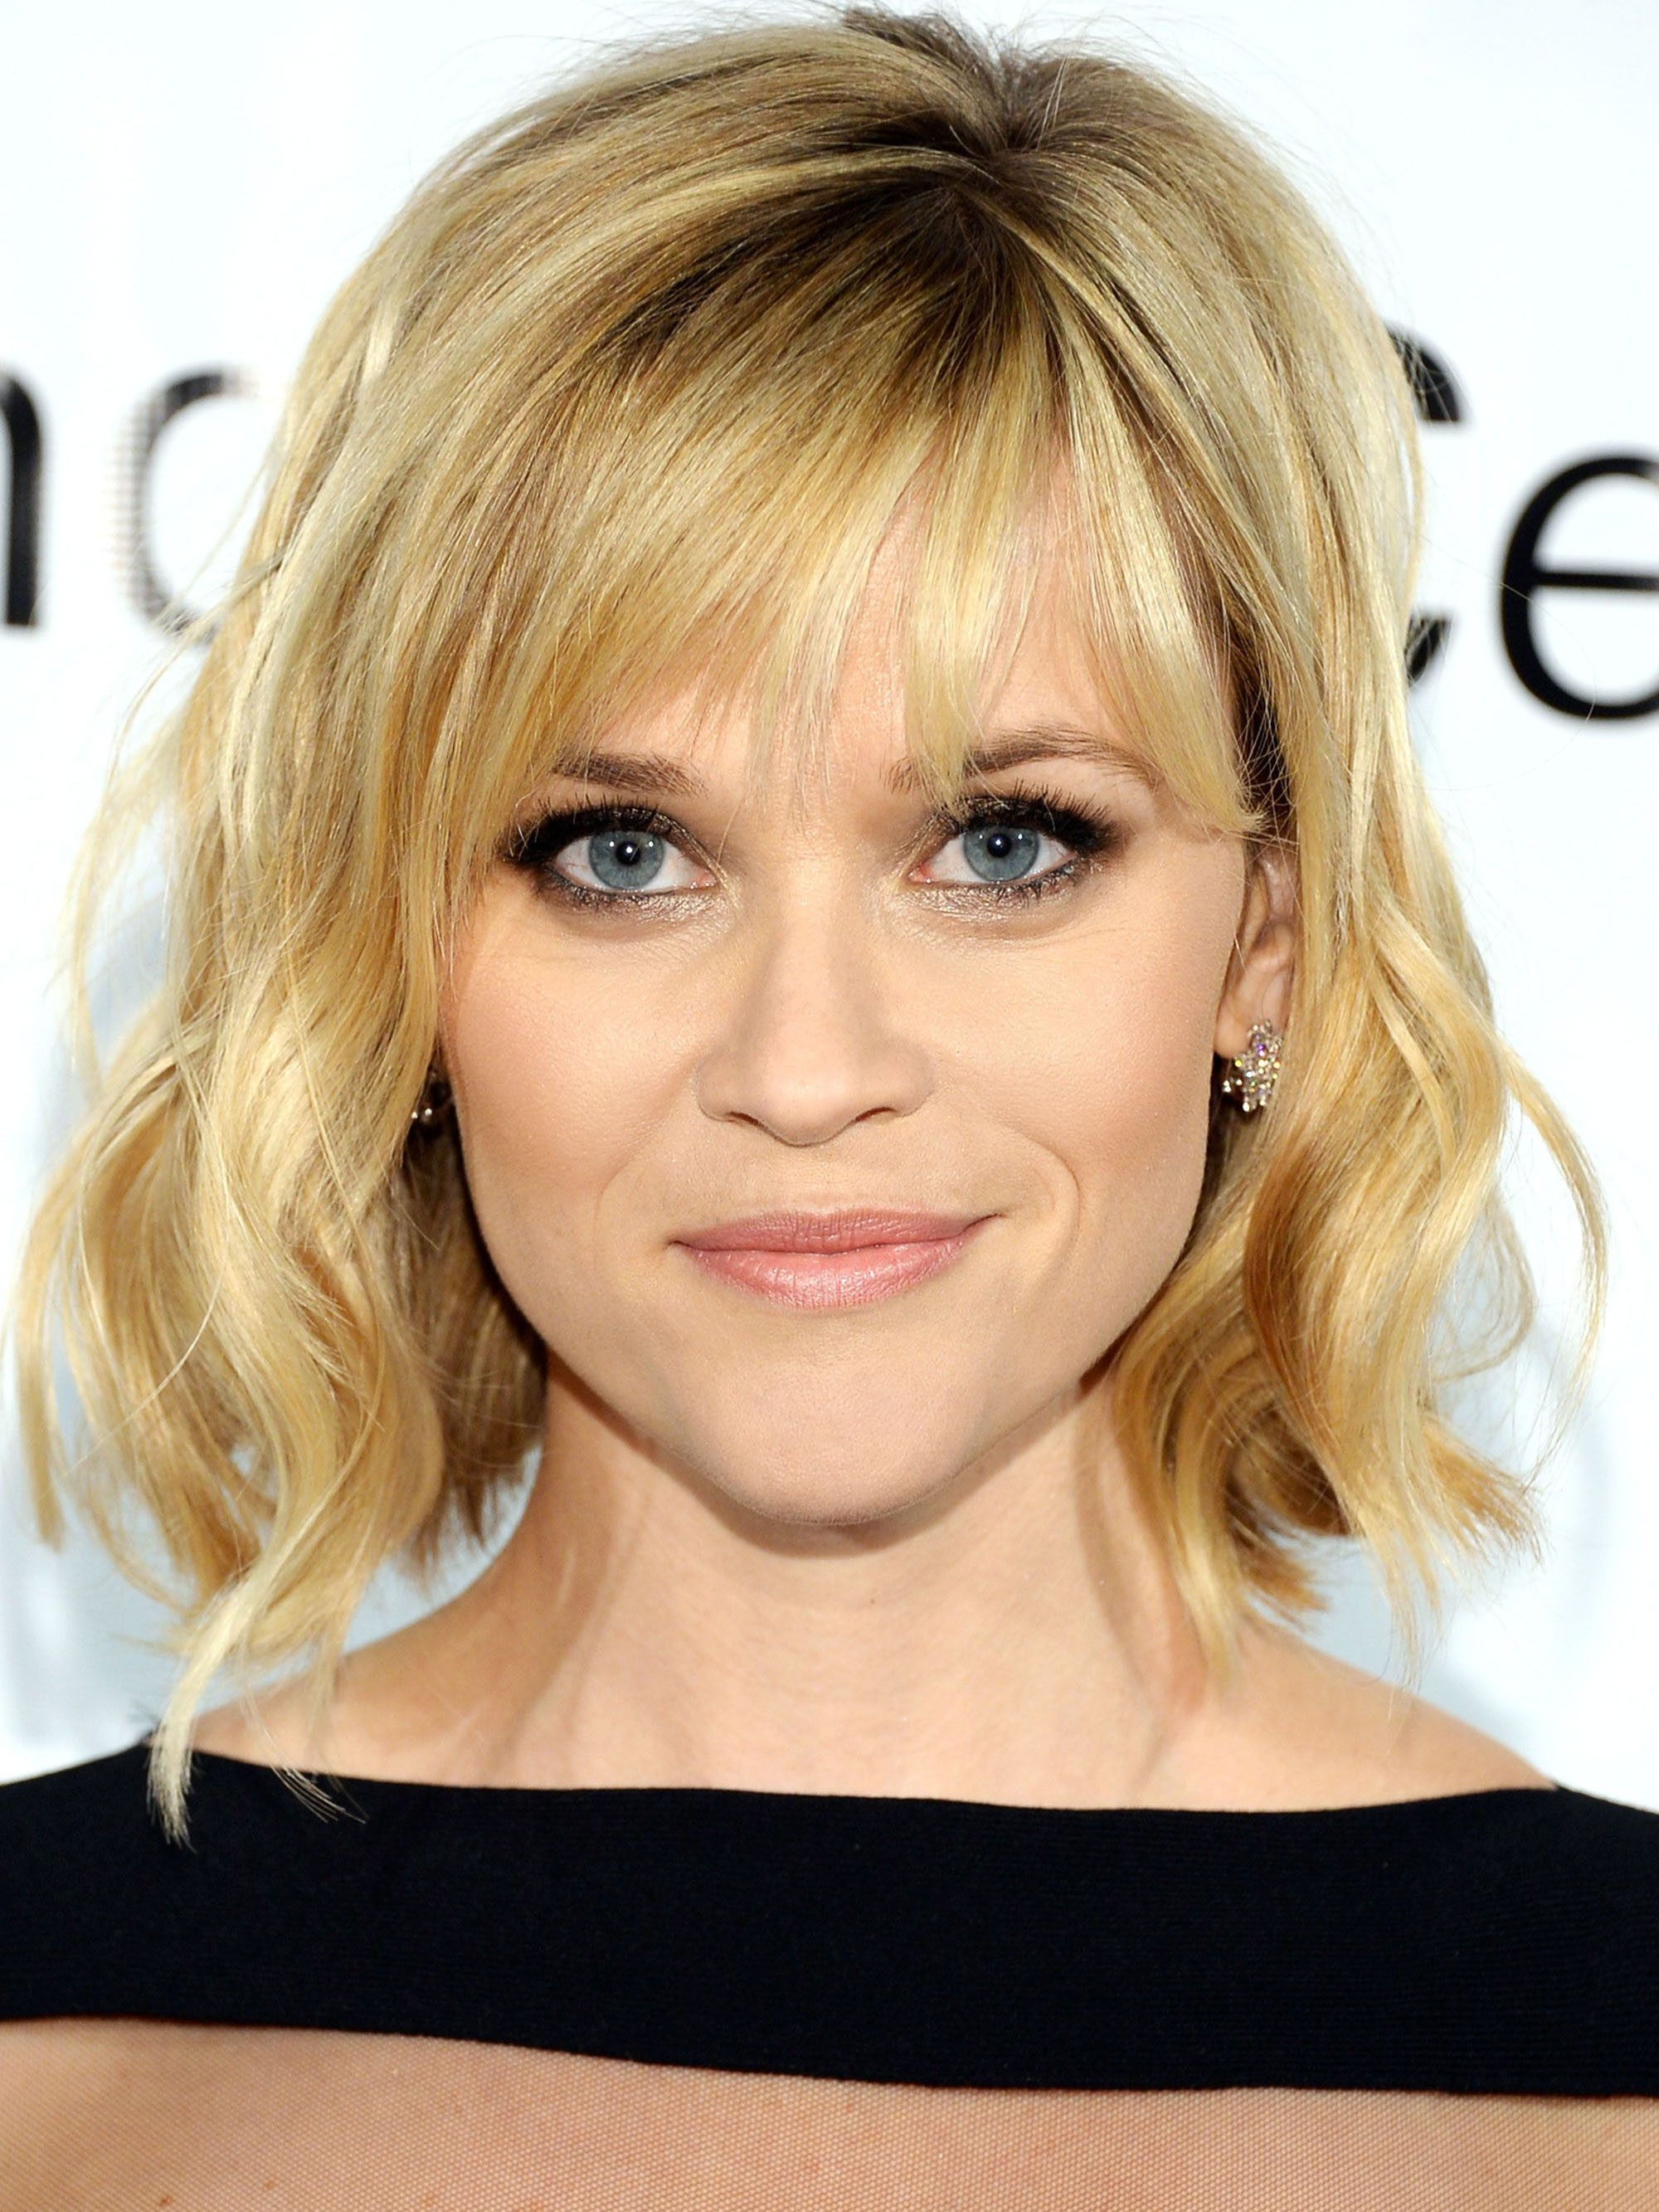 Reese Witherspoon Blonde Curly Hair Wig With Bangs